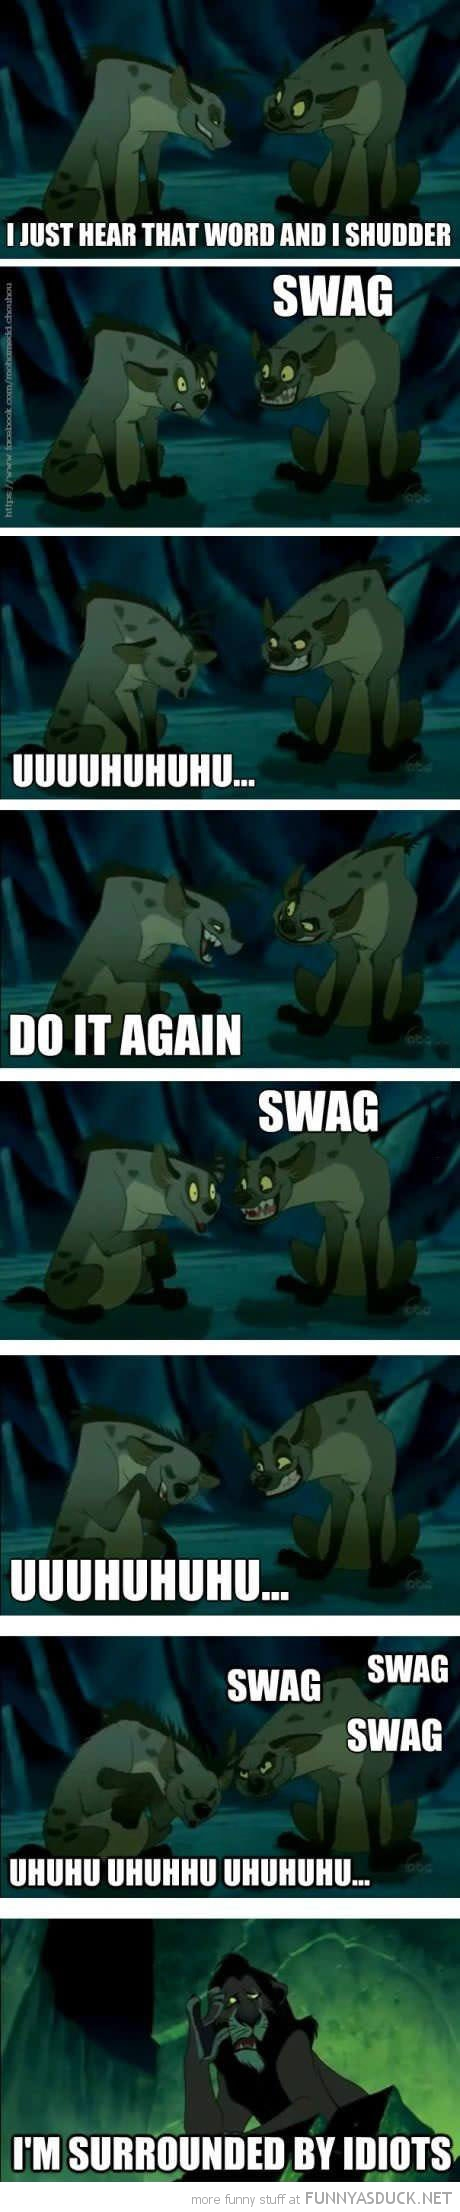 hyenas lion king scar surrounded by idiots say swag funny pics pictures pic picture image photo images photos lol